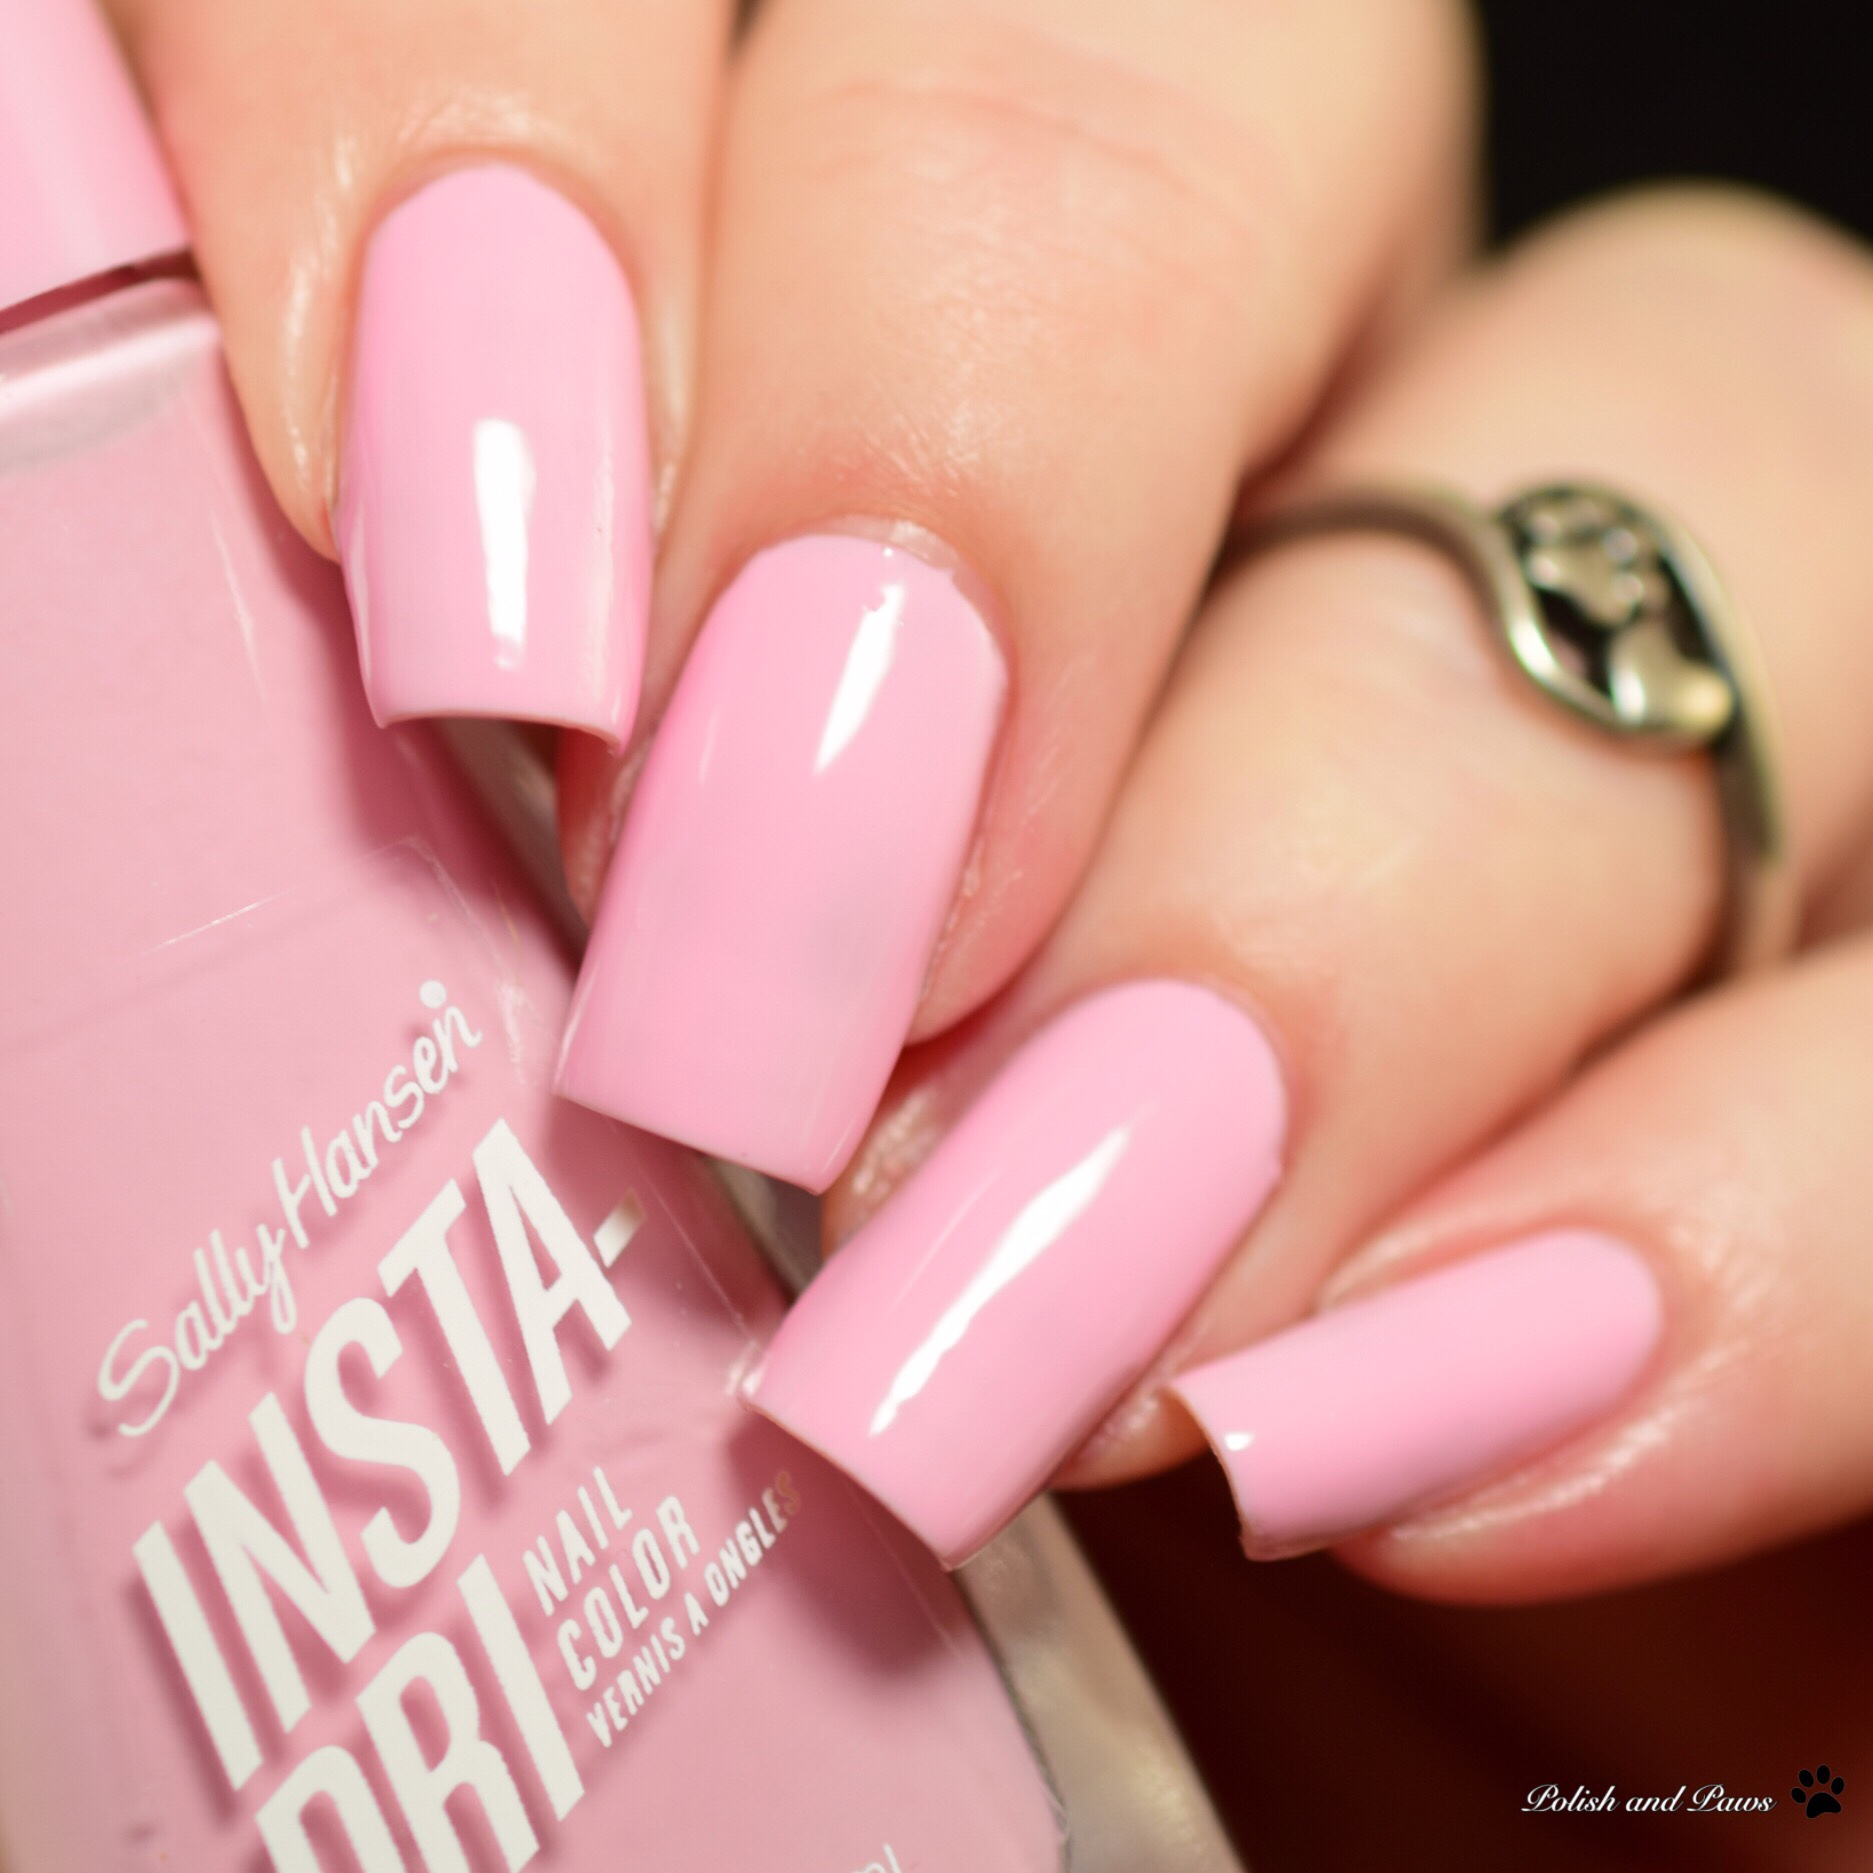 Sally Hansen Instra-Dri Racing Rose 263